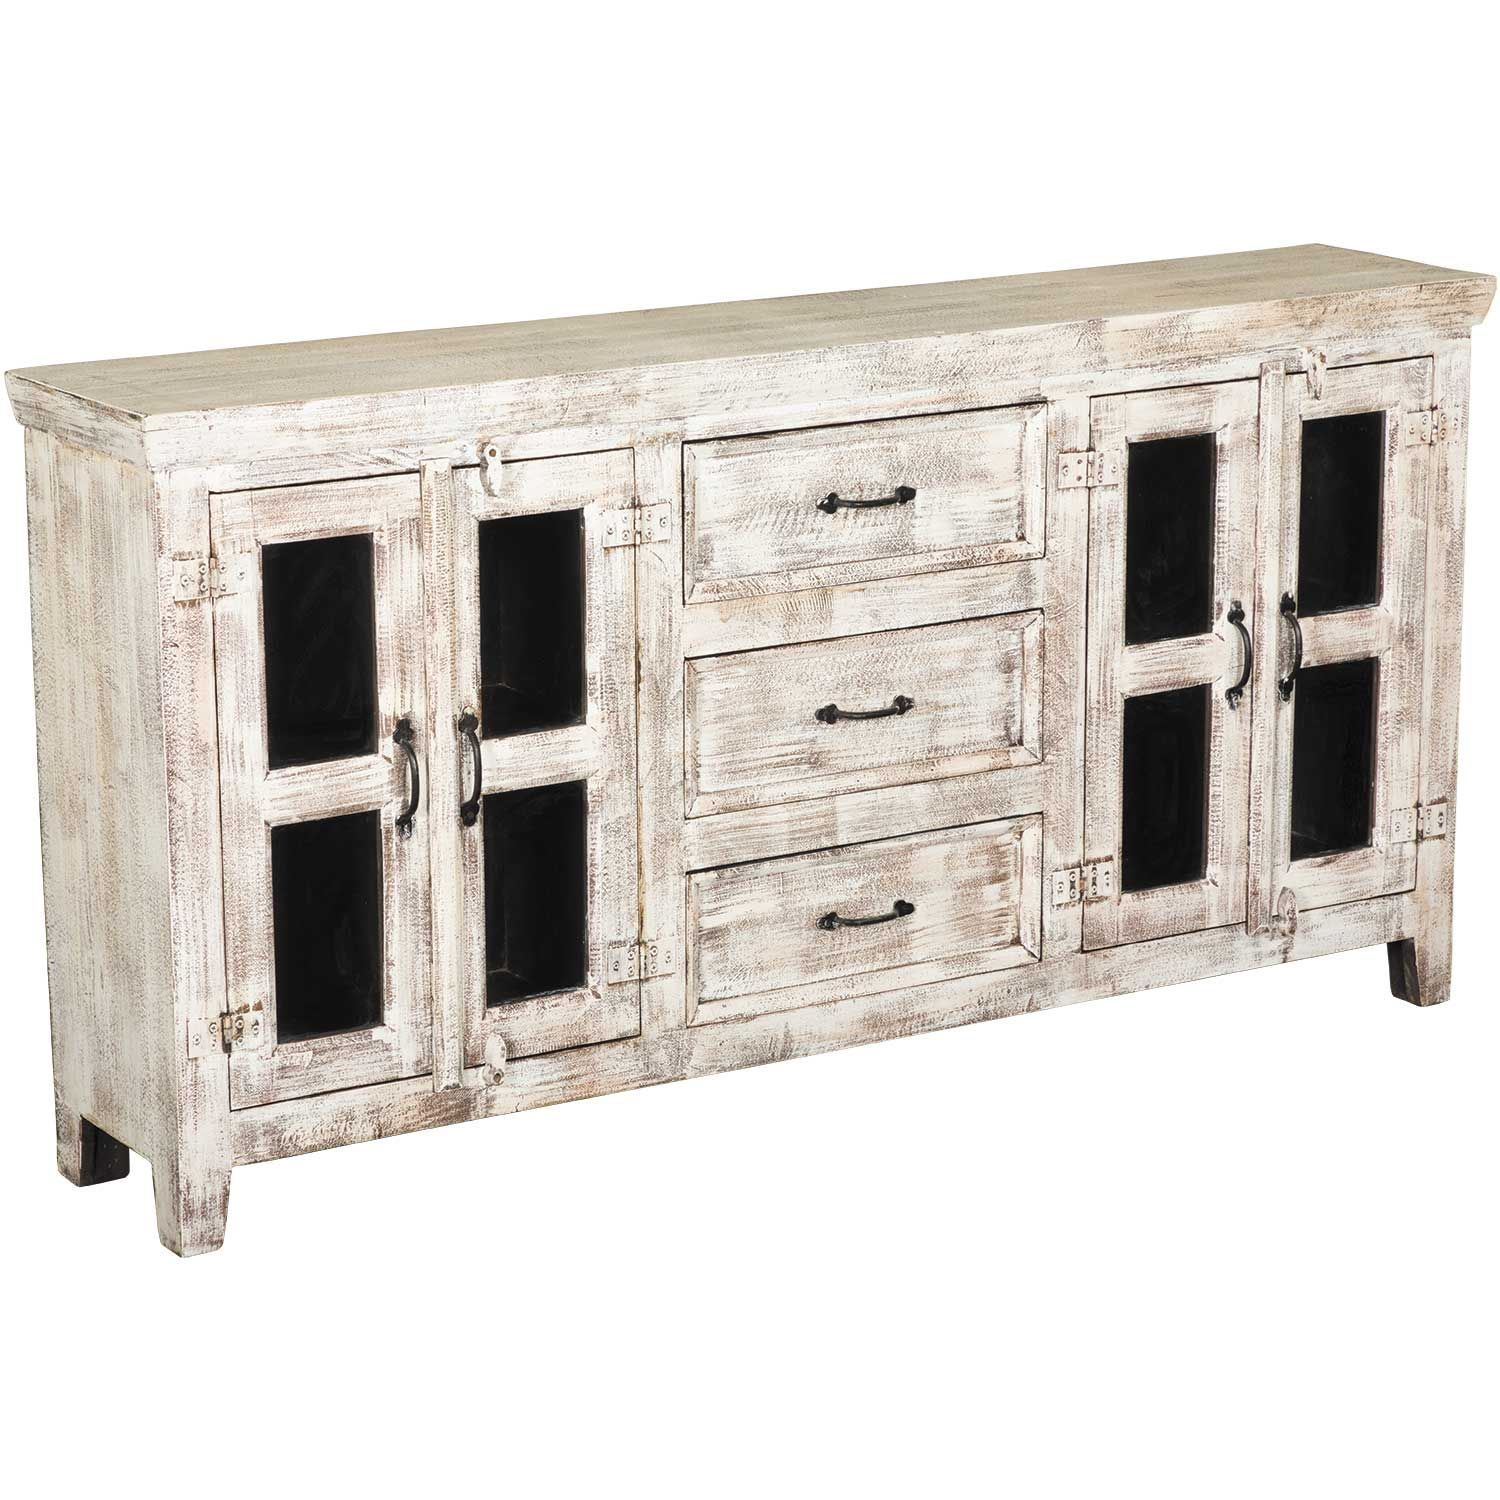 White Rustic Console Sideboard